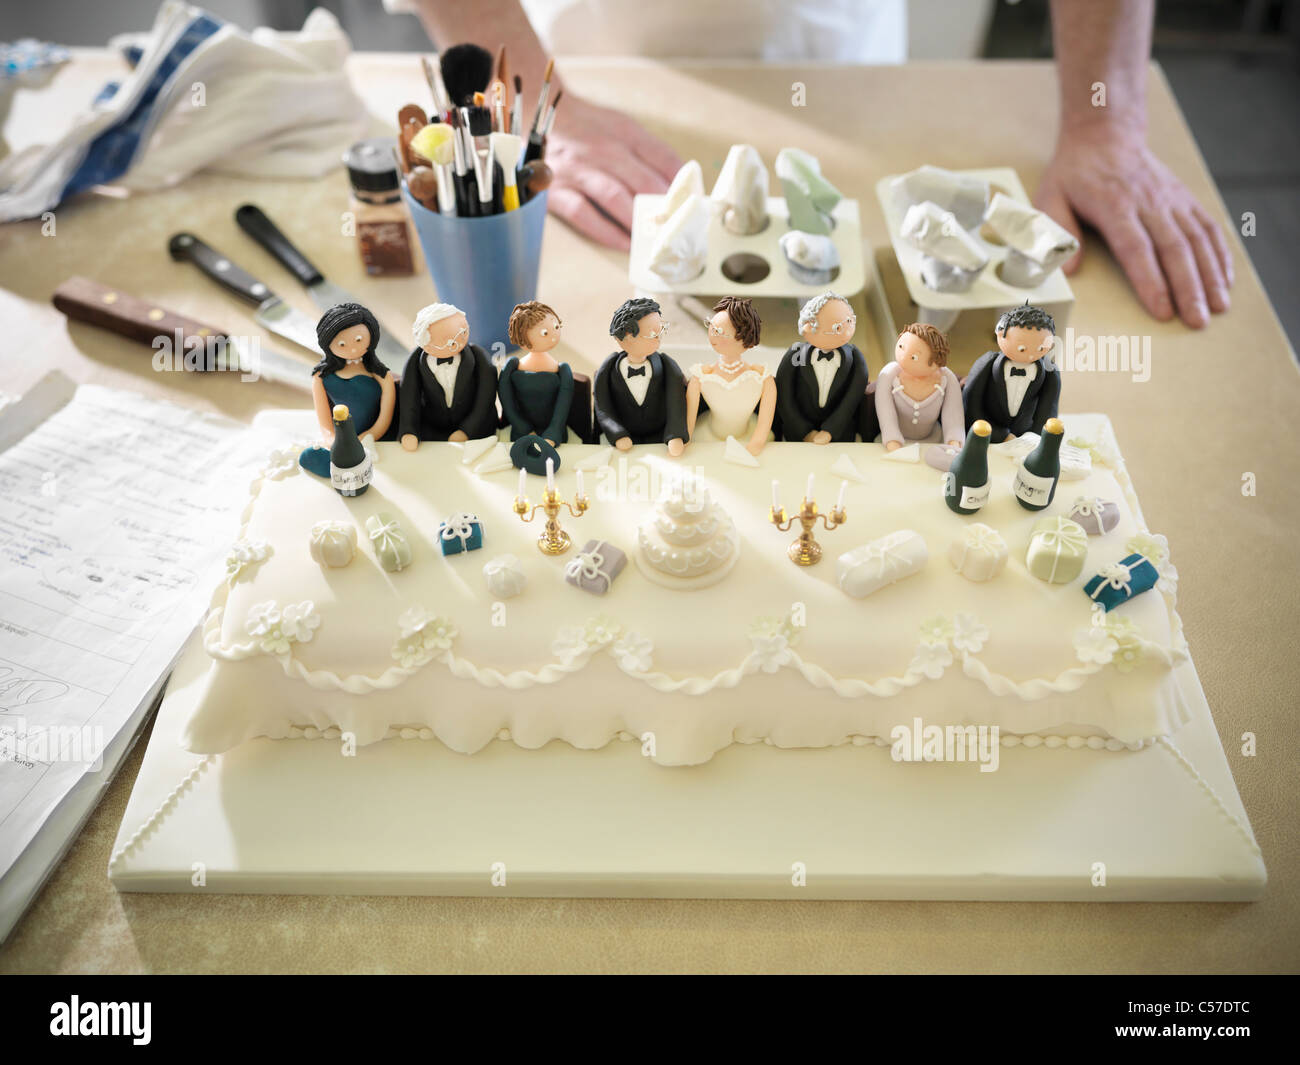 Unusual Wedding Stock Photos & Unusual Wedding Stock Images - Alamy